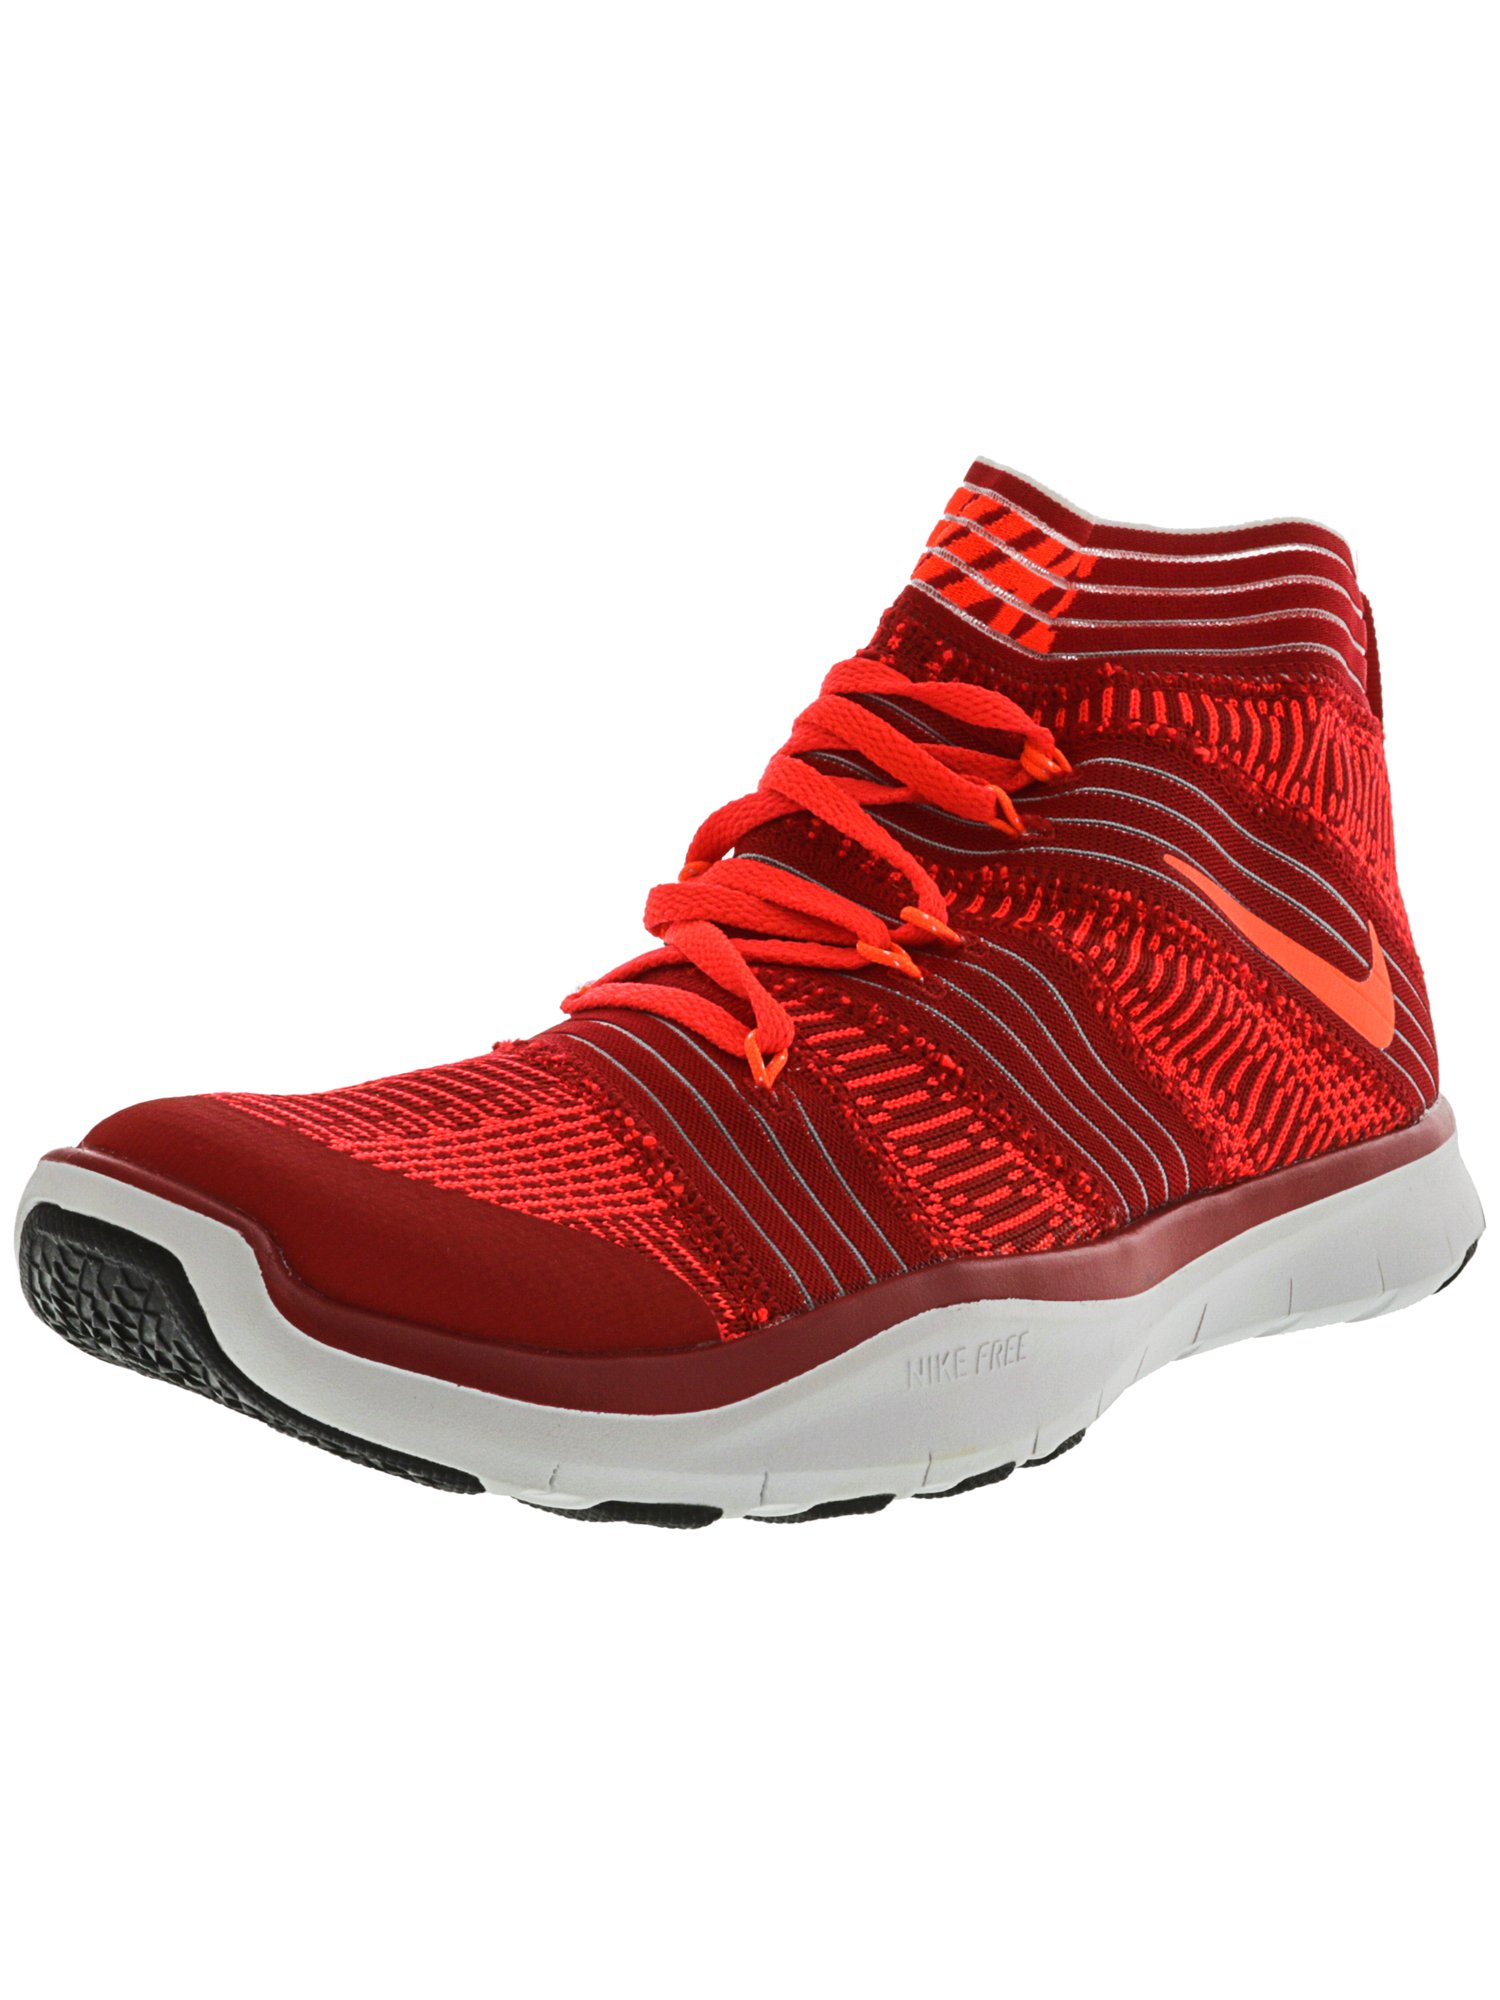 e68f882687 ... low price nike mens free train instinct 2 university red hyper orange  ankle high training shoes